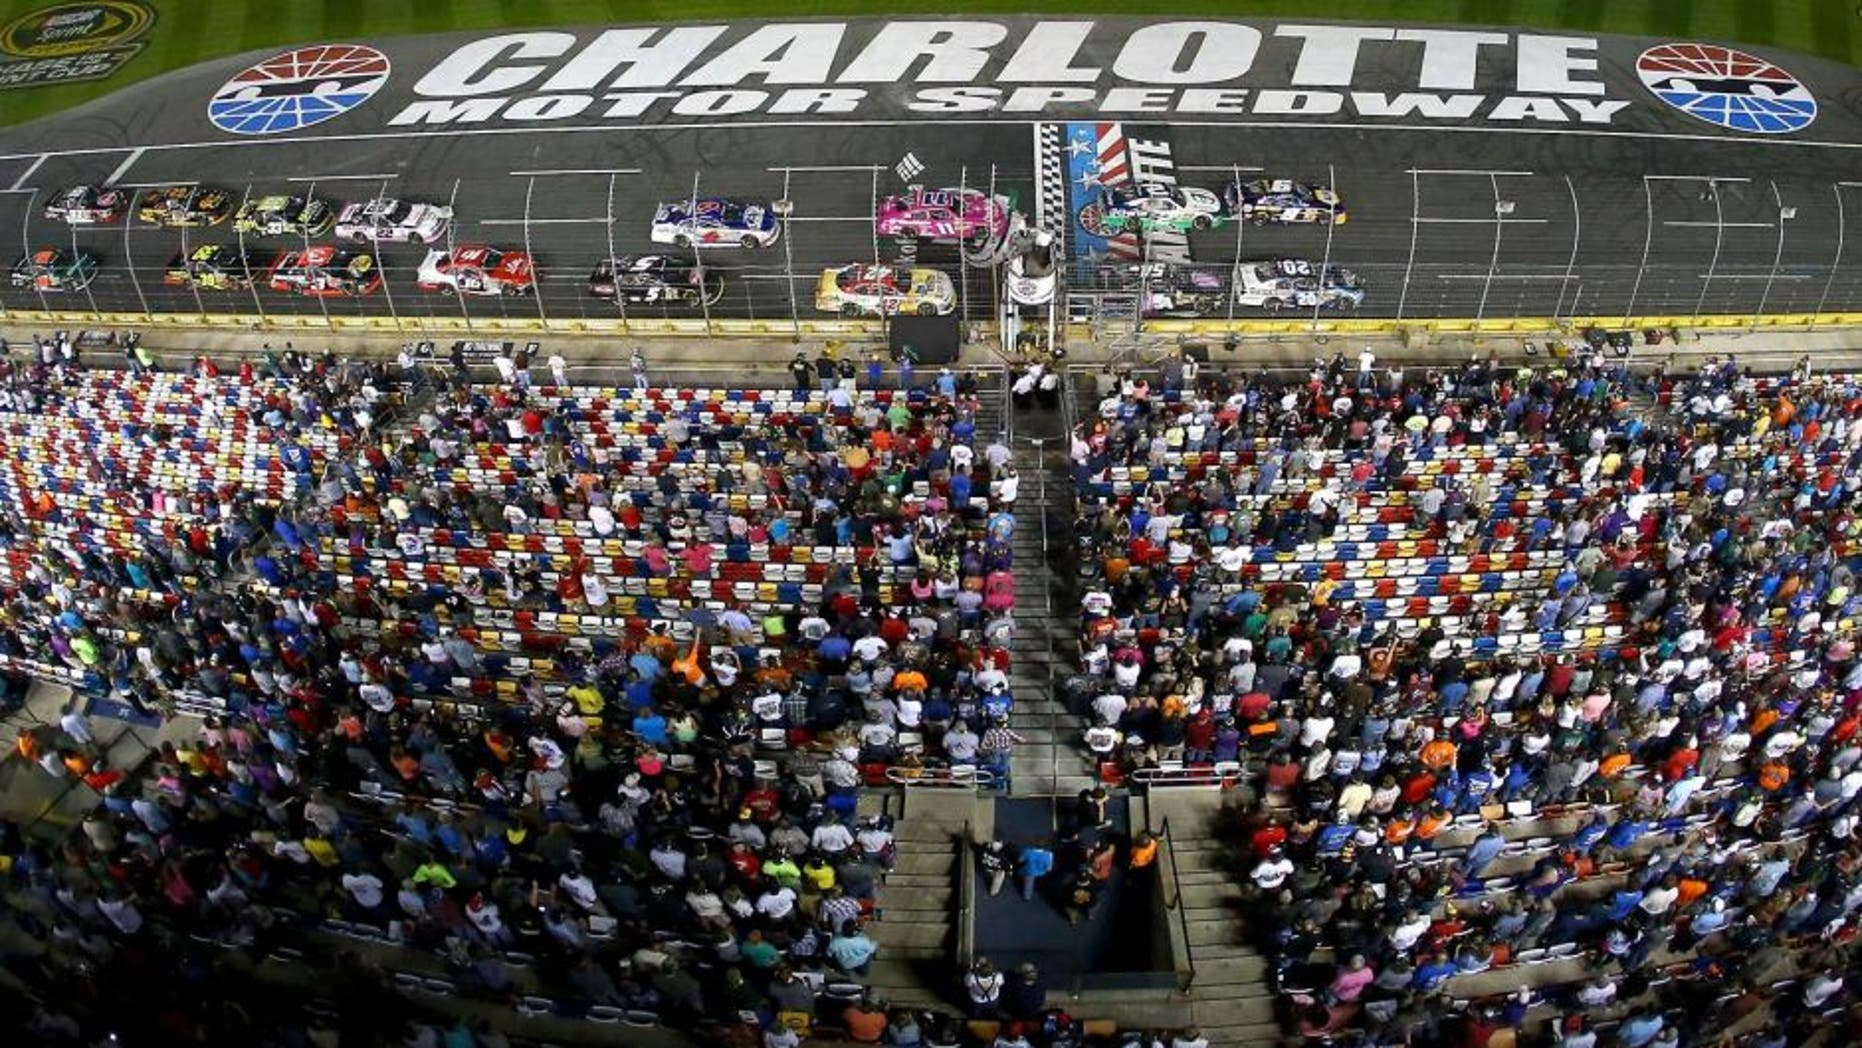 CHARLOTTE, NC - OCTOBER 10: A general view of cars racing during the NASCAR Nationwide Series Drive For The Cure 300 presented by Blue Cross Blue Shield of North Carolina at Charlotte Motor Speedway on October 10, 2014 in Charlotte, North Carolina. (Photo by Streeter Lecka/Getty Images)